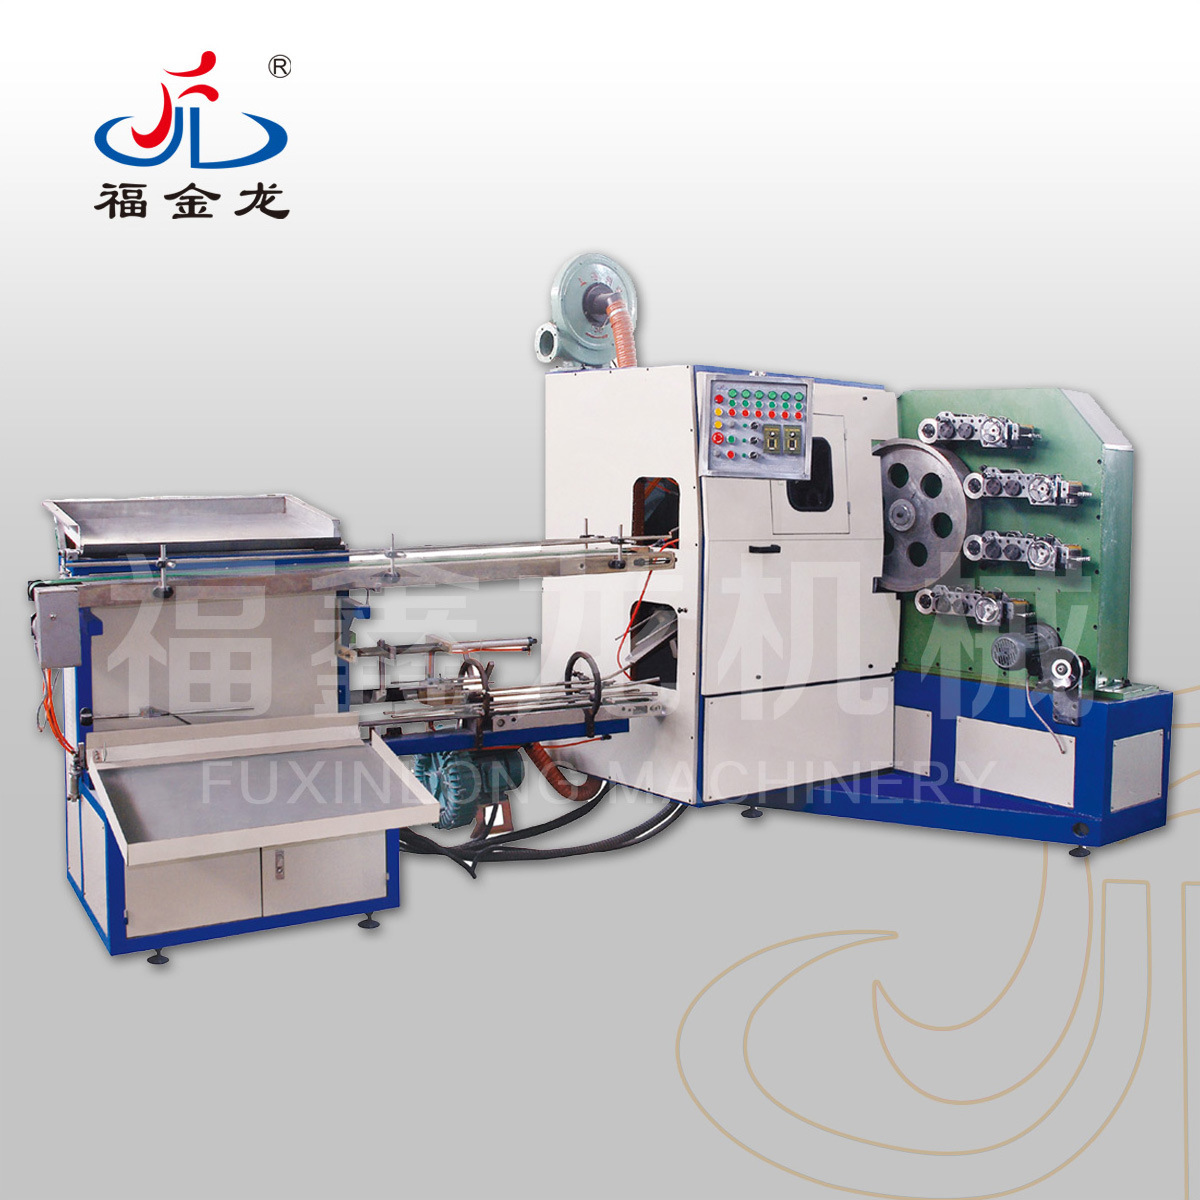 Four-Color Cup Printer Printing Machine (FJL-4A)